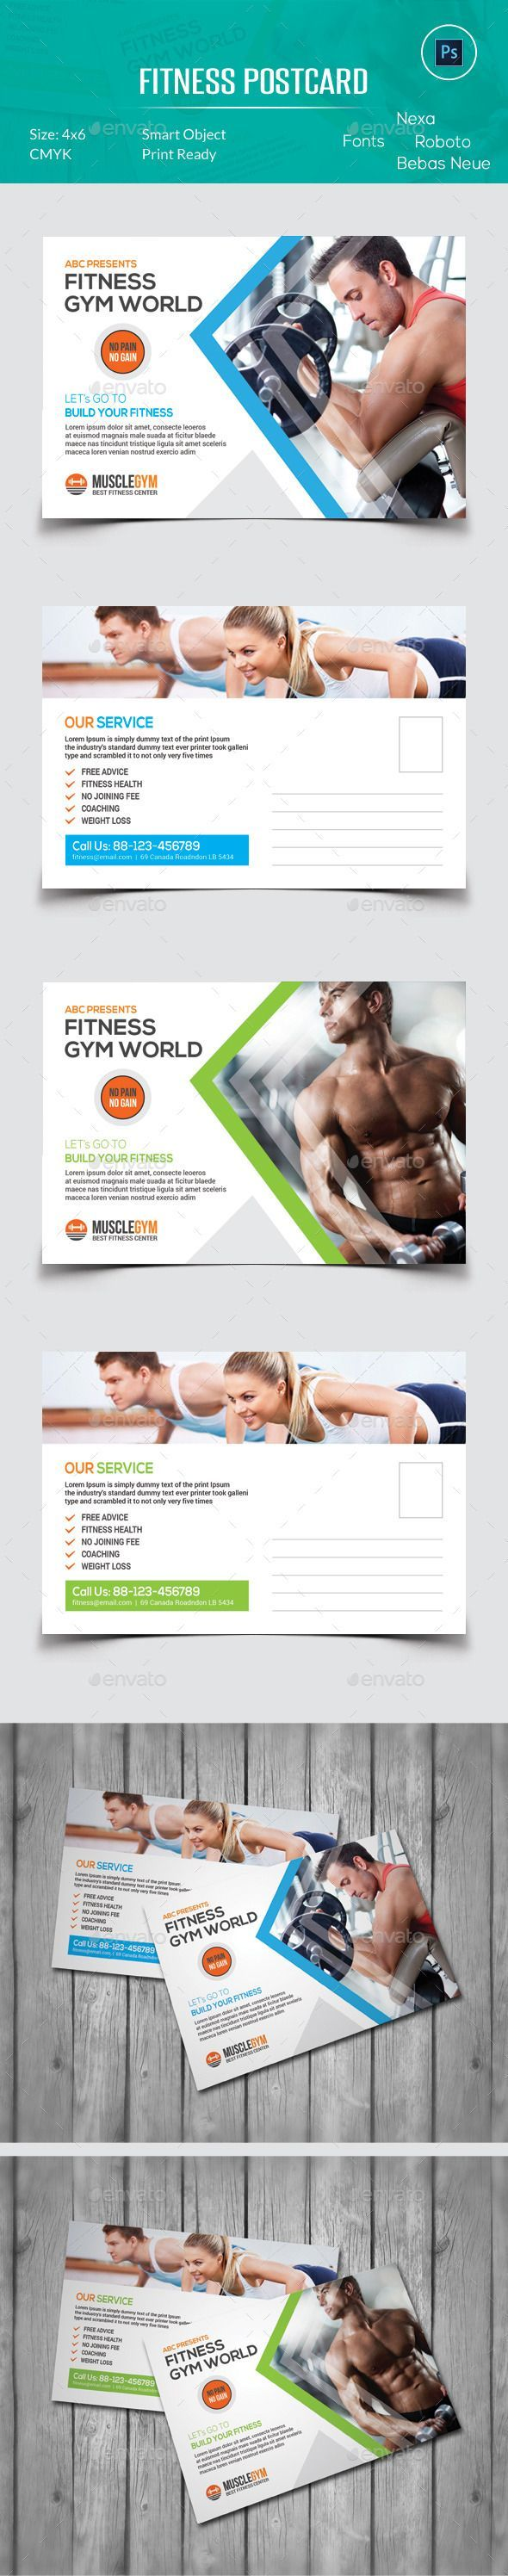 Fitness Postcard — Photoshop PSD #energy #postcards • Available here → https://graphicriver.net/item/fitness-postcard/12844684?ref=pxcr